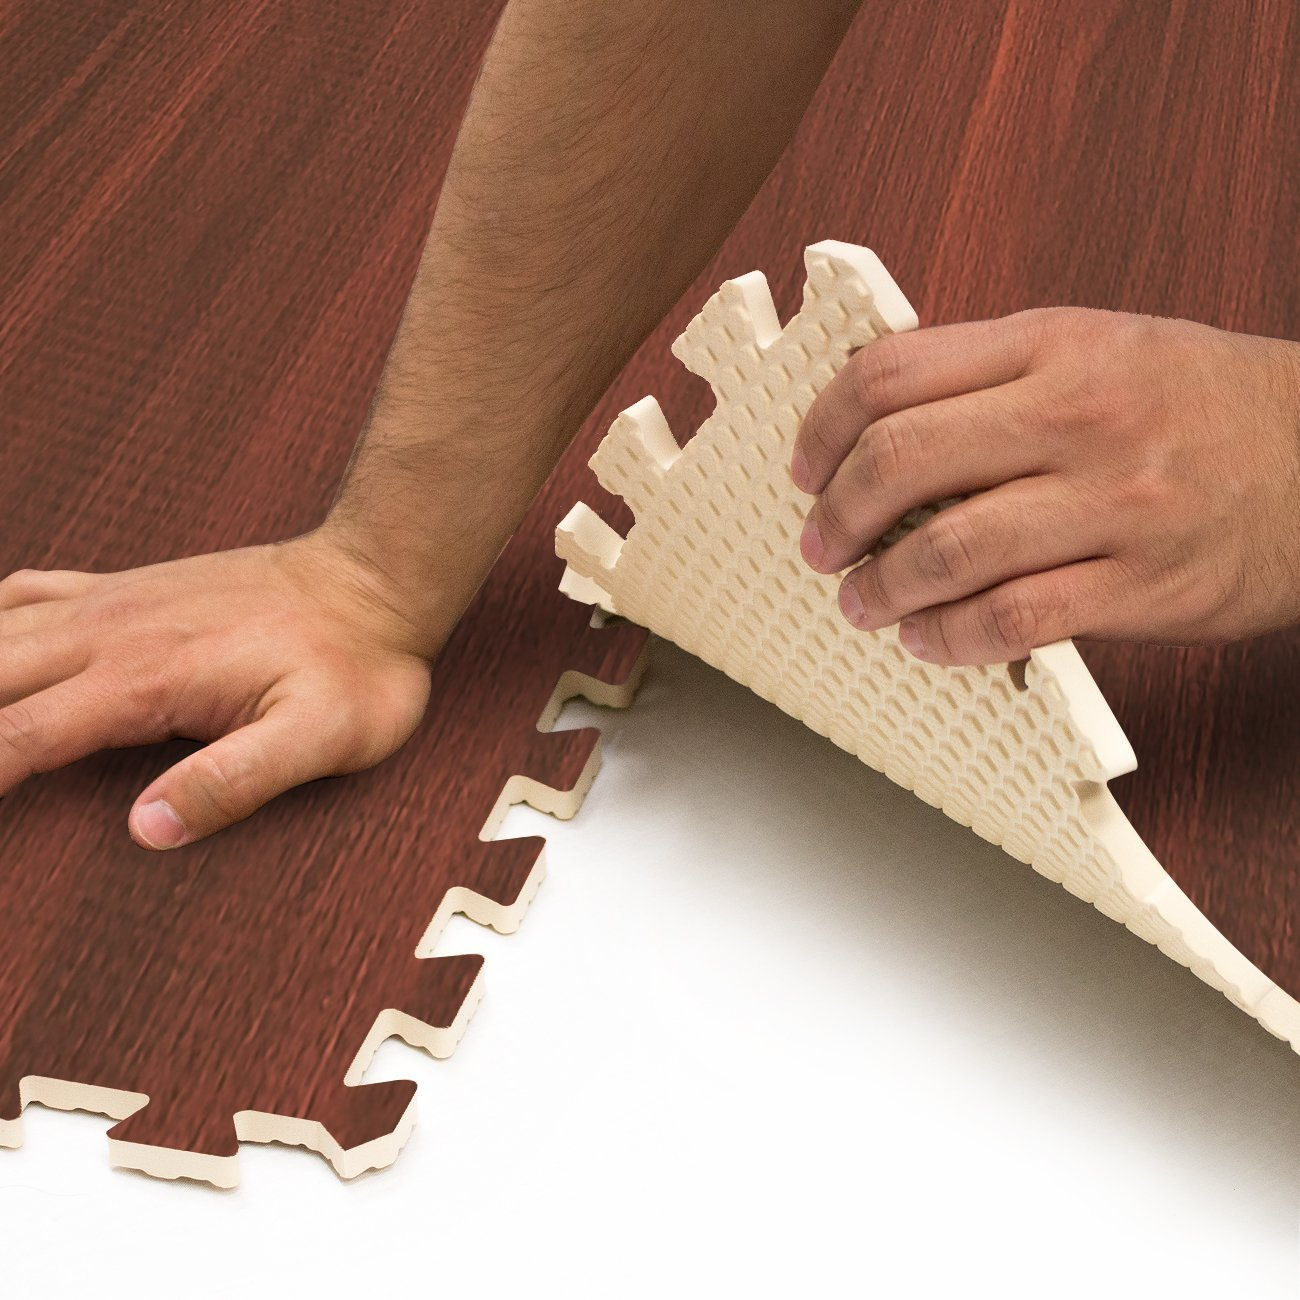 Sorbus Wood Floor Mats Foam Interlocking Wood Mats Each Tile 4 Square Feet 3/8-Inch Thick Puzzle Wood Tiles with Borders – for Home Office Playroom Basement (6 Tiles 24 Sq ft, Wood Grain - Cherry) by Sorbus (Image #5)